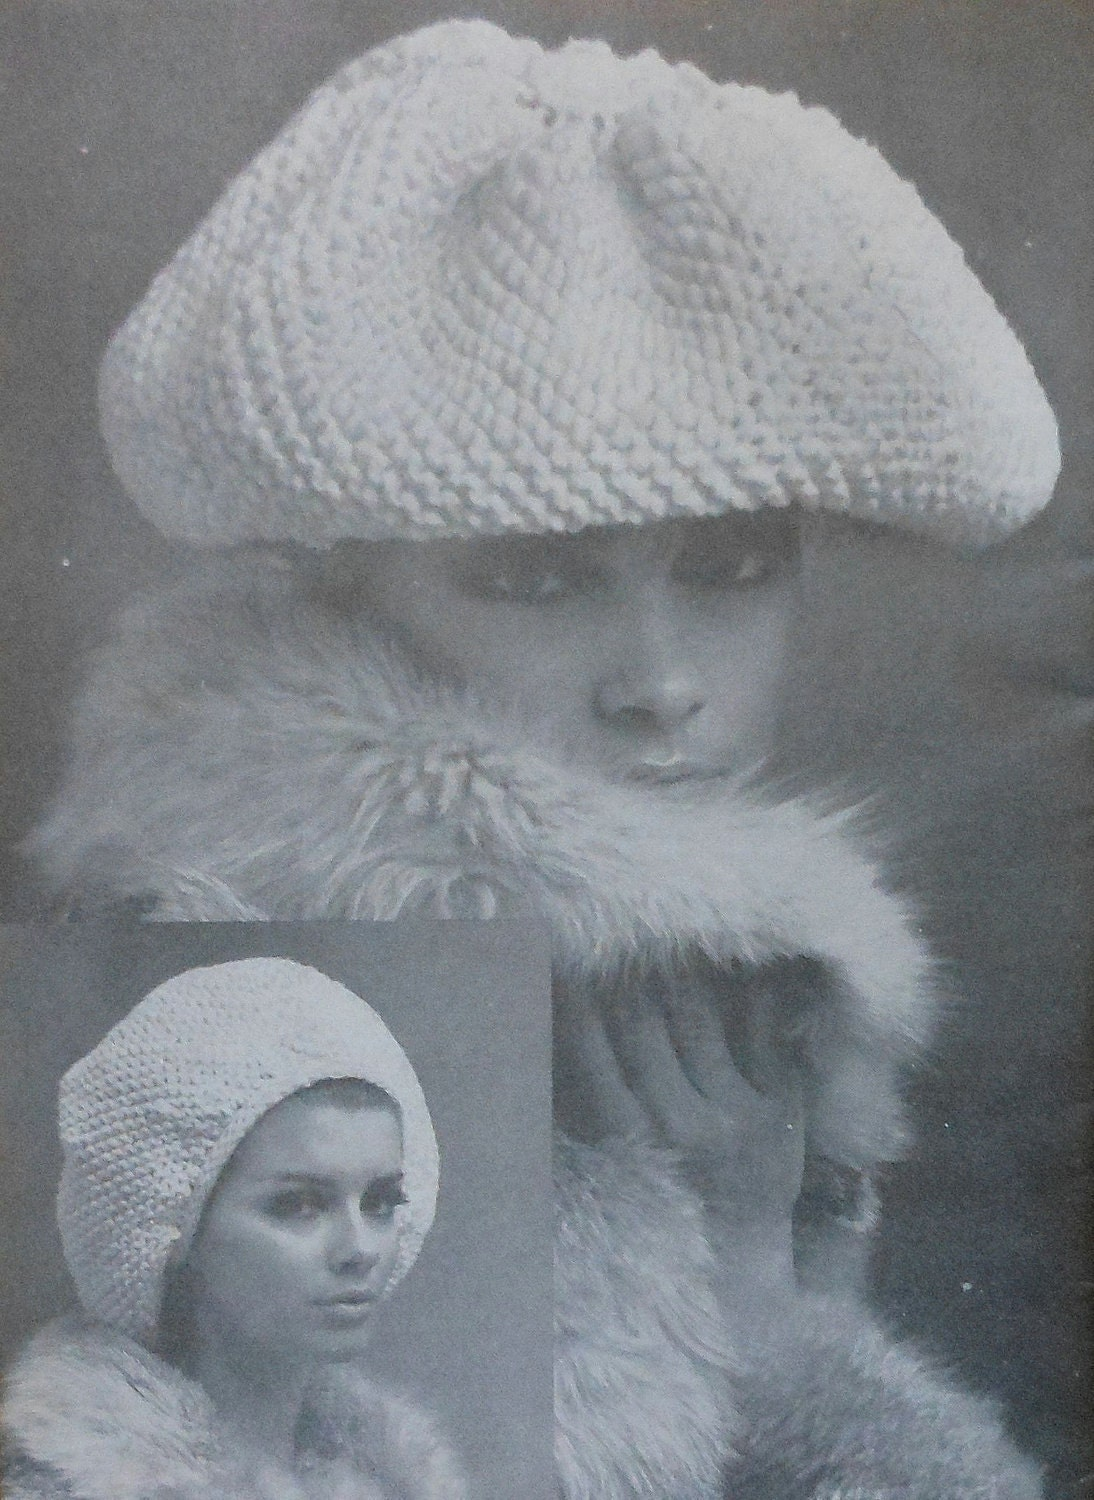 Oversized Beret Knitting Pattern : Vintage Retro Oversized Beret Knitting Pattern by latenightcoffee